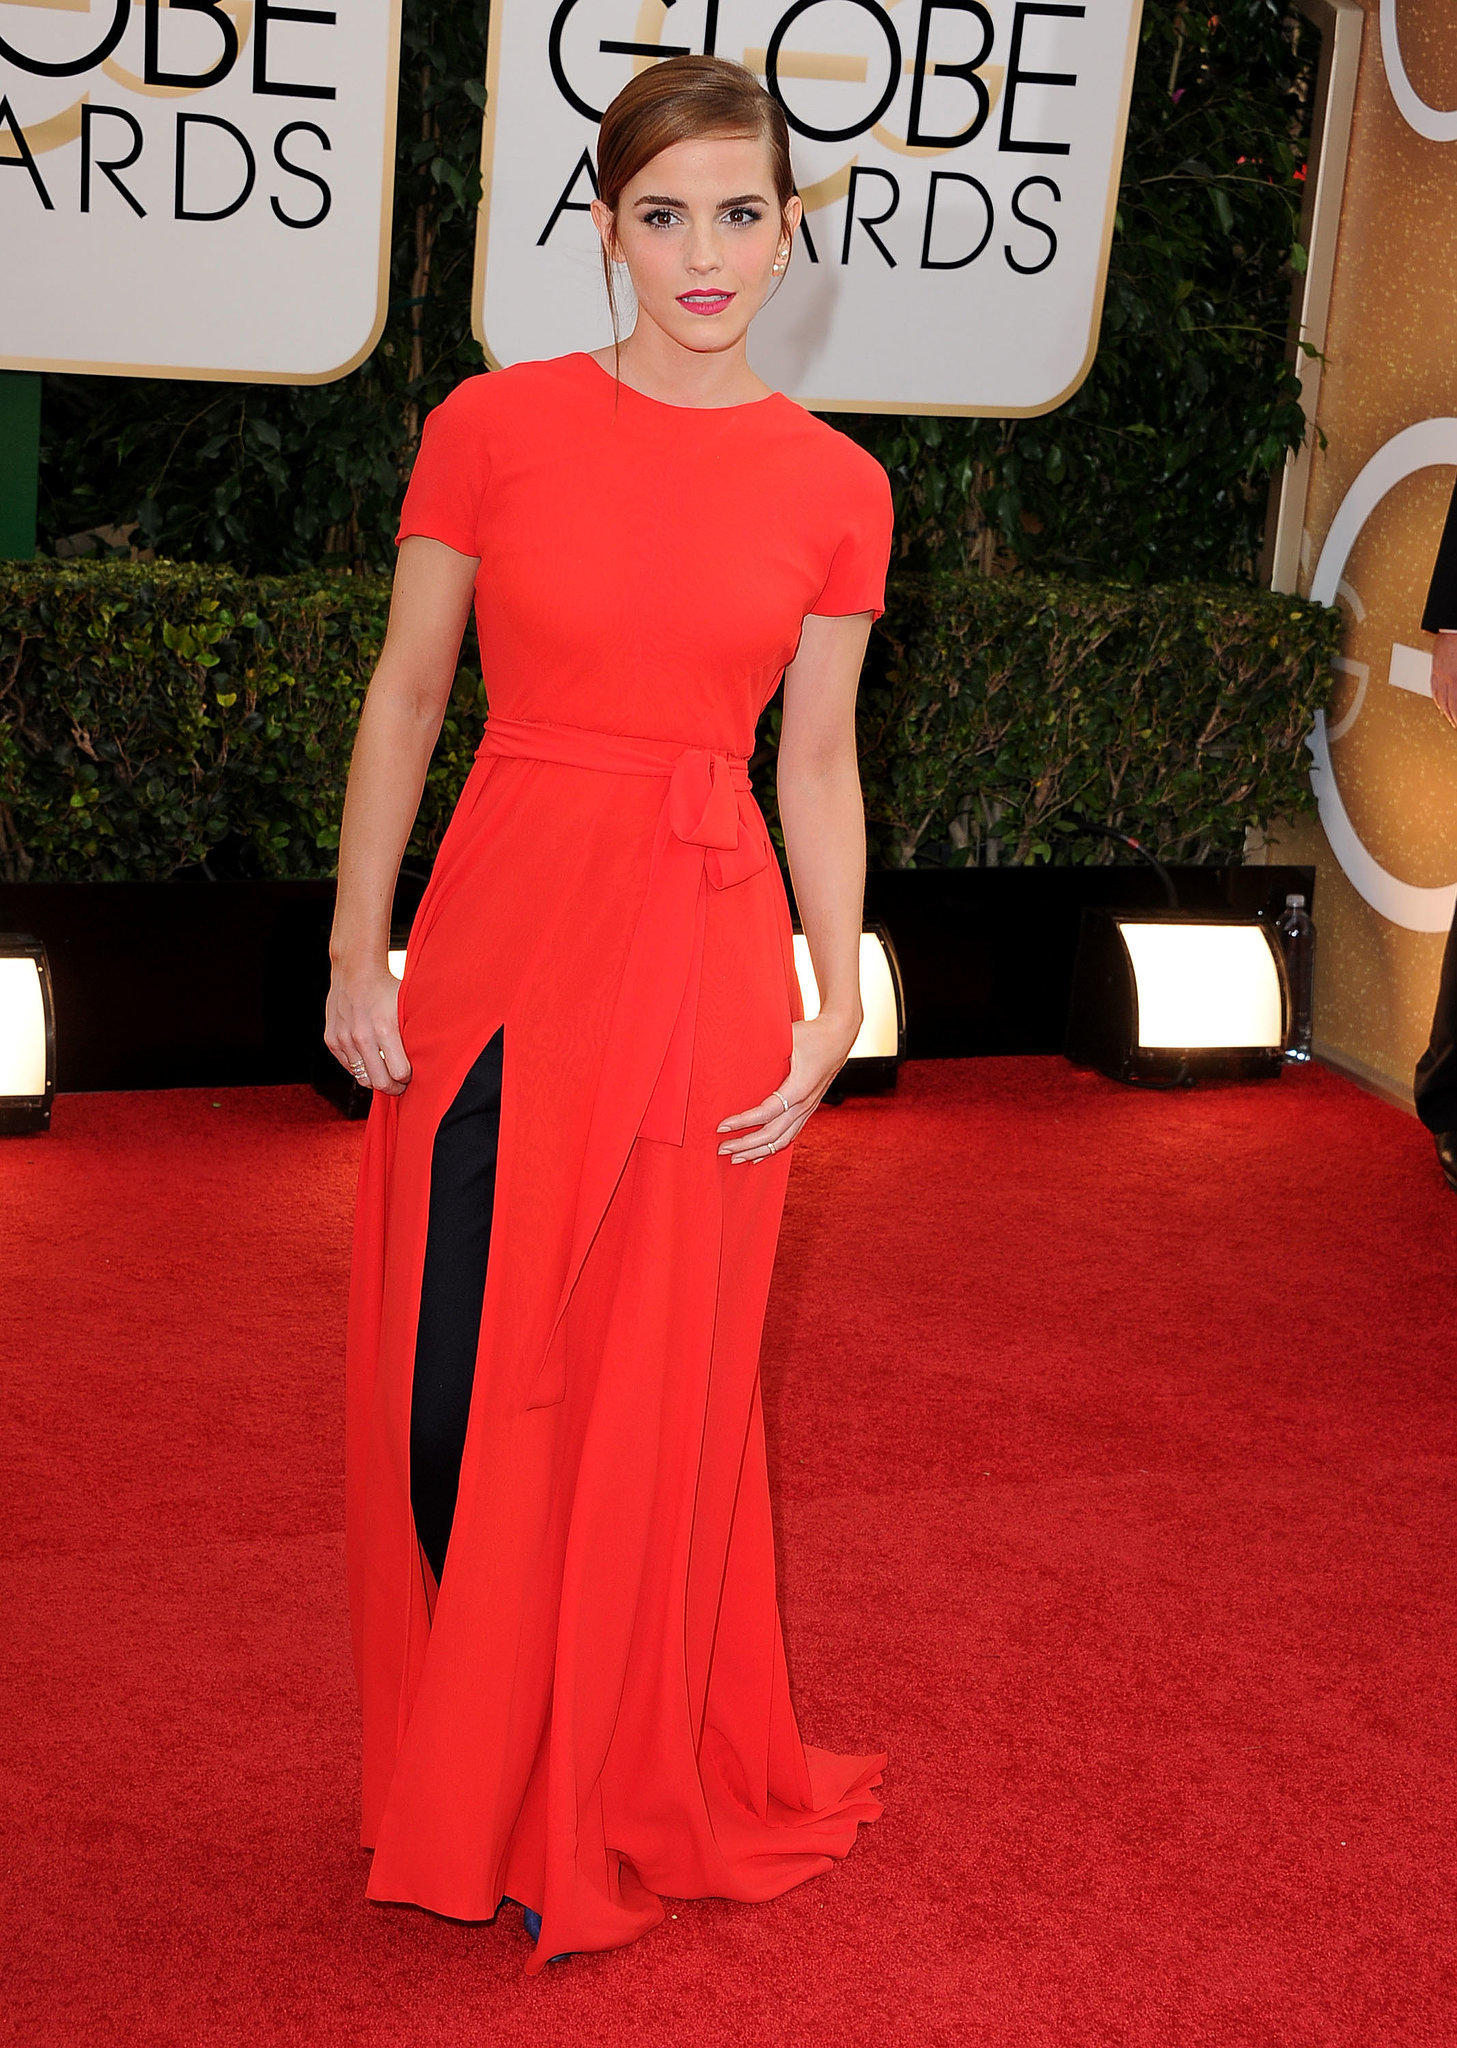 One of our favorite looks from this year's Golden Globe